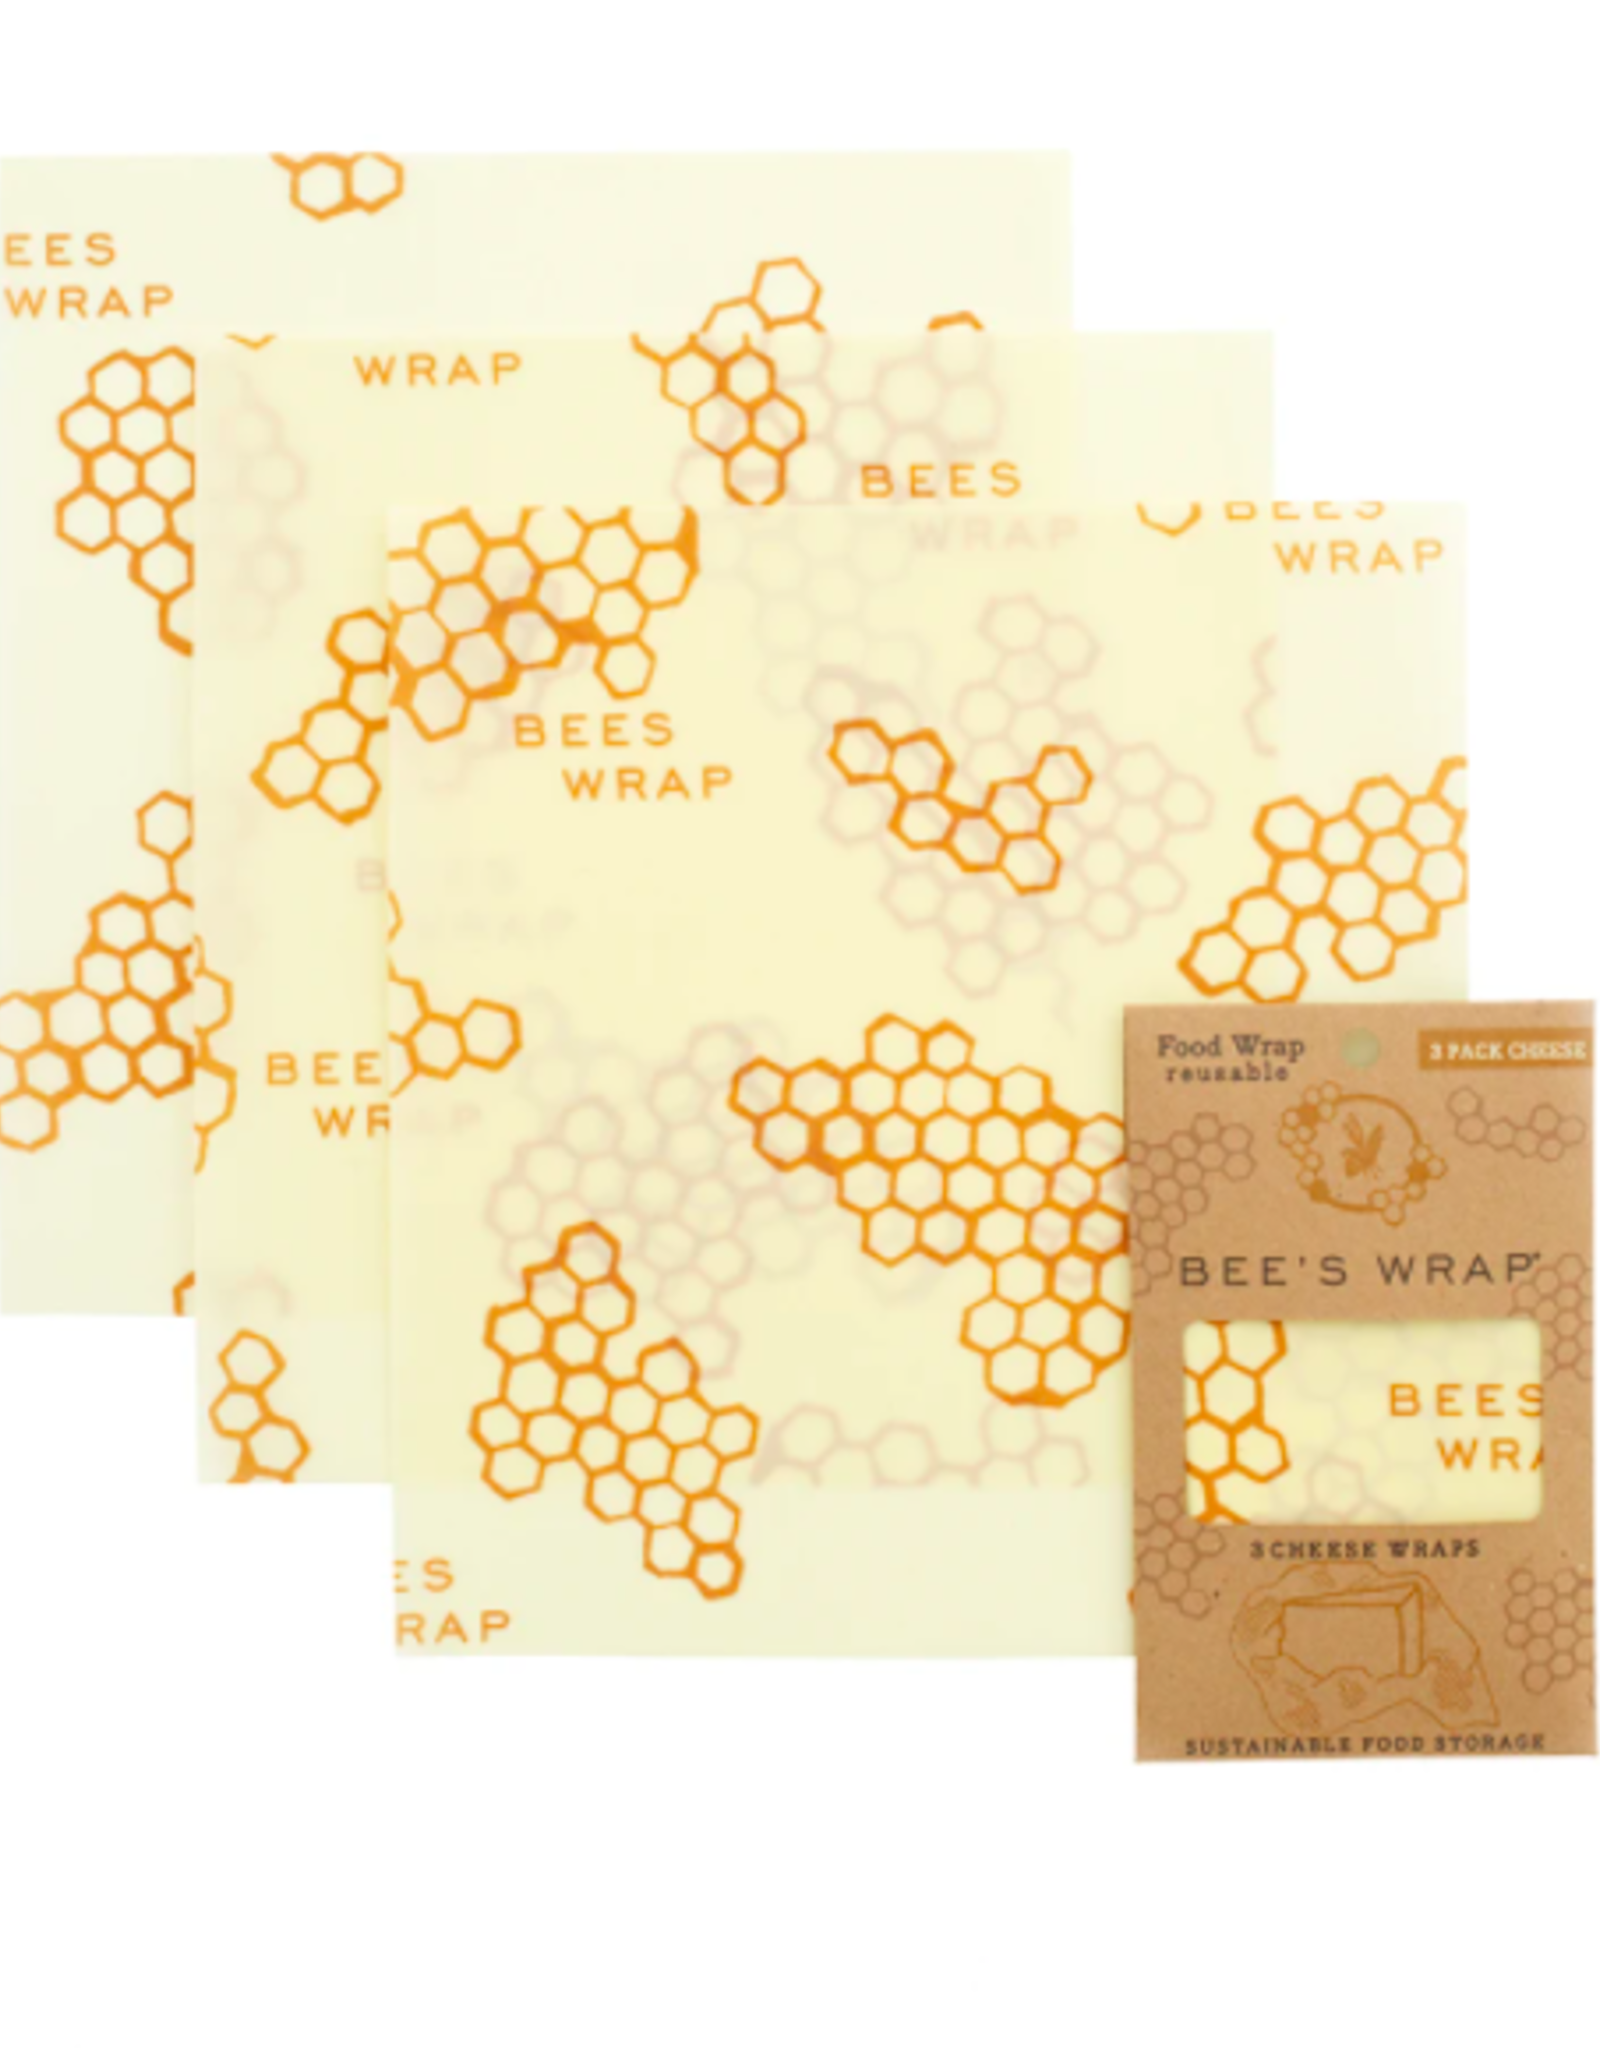 Bees Wrap Cheese Wraps 3-pack